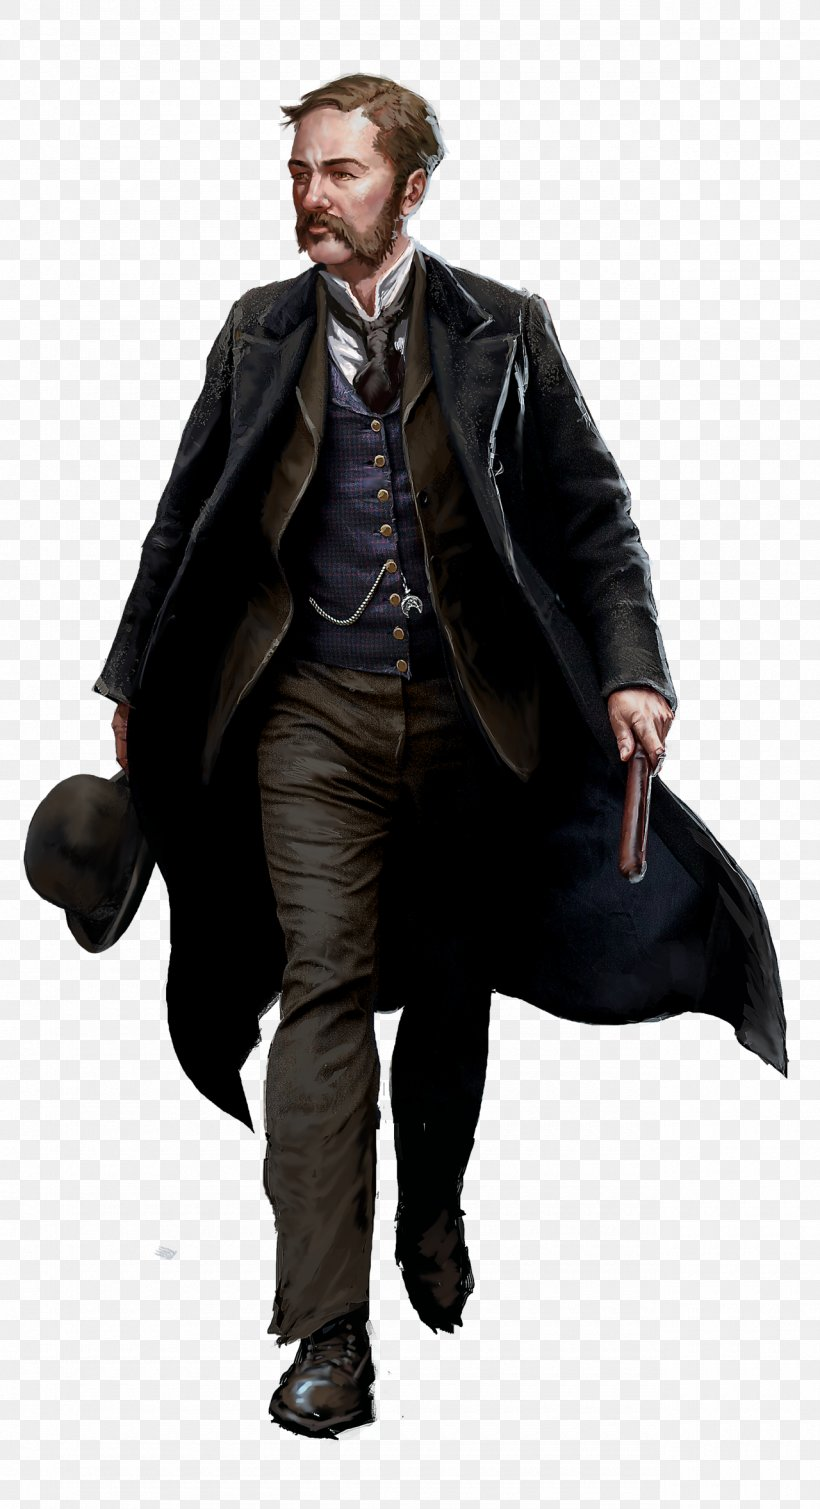 Inspector Frederick Abberline Assassin's Creed Syndicate Metropolitan Police Service Chief Inspector, PNG, 1280x2356px, Frederick Abberline, Assassin S Creed, Assassin S Creed Syndicate, Character, Chief Inspector Download Free